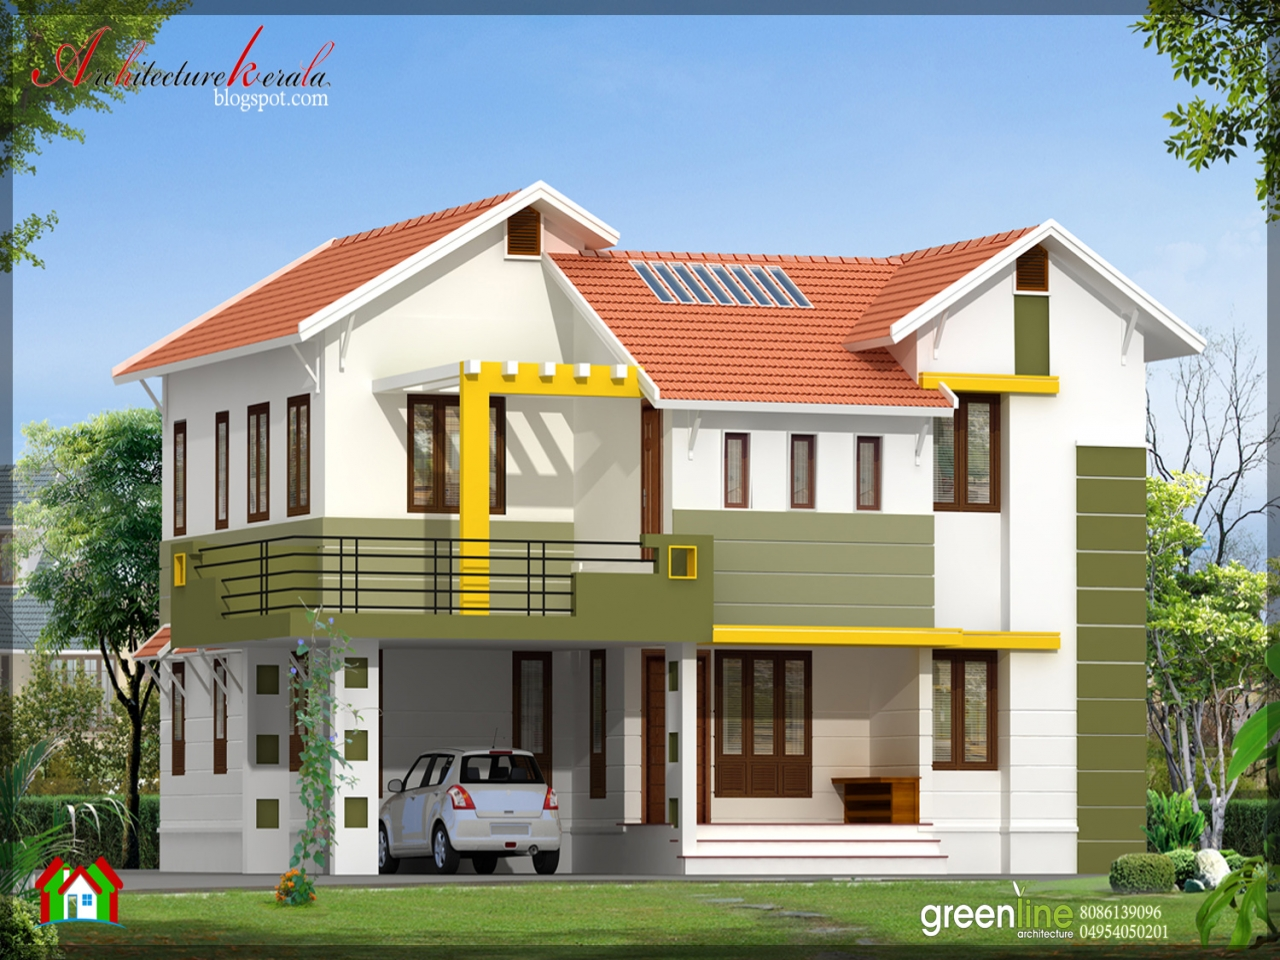 Simple modern house designs simple house design in india for Simple modern house plans